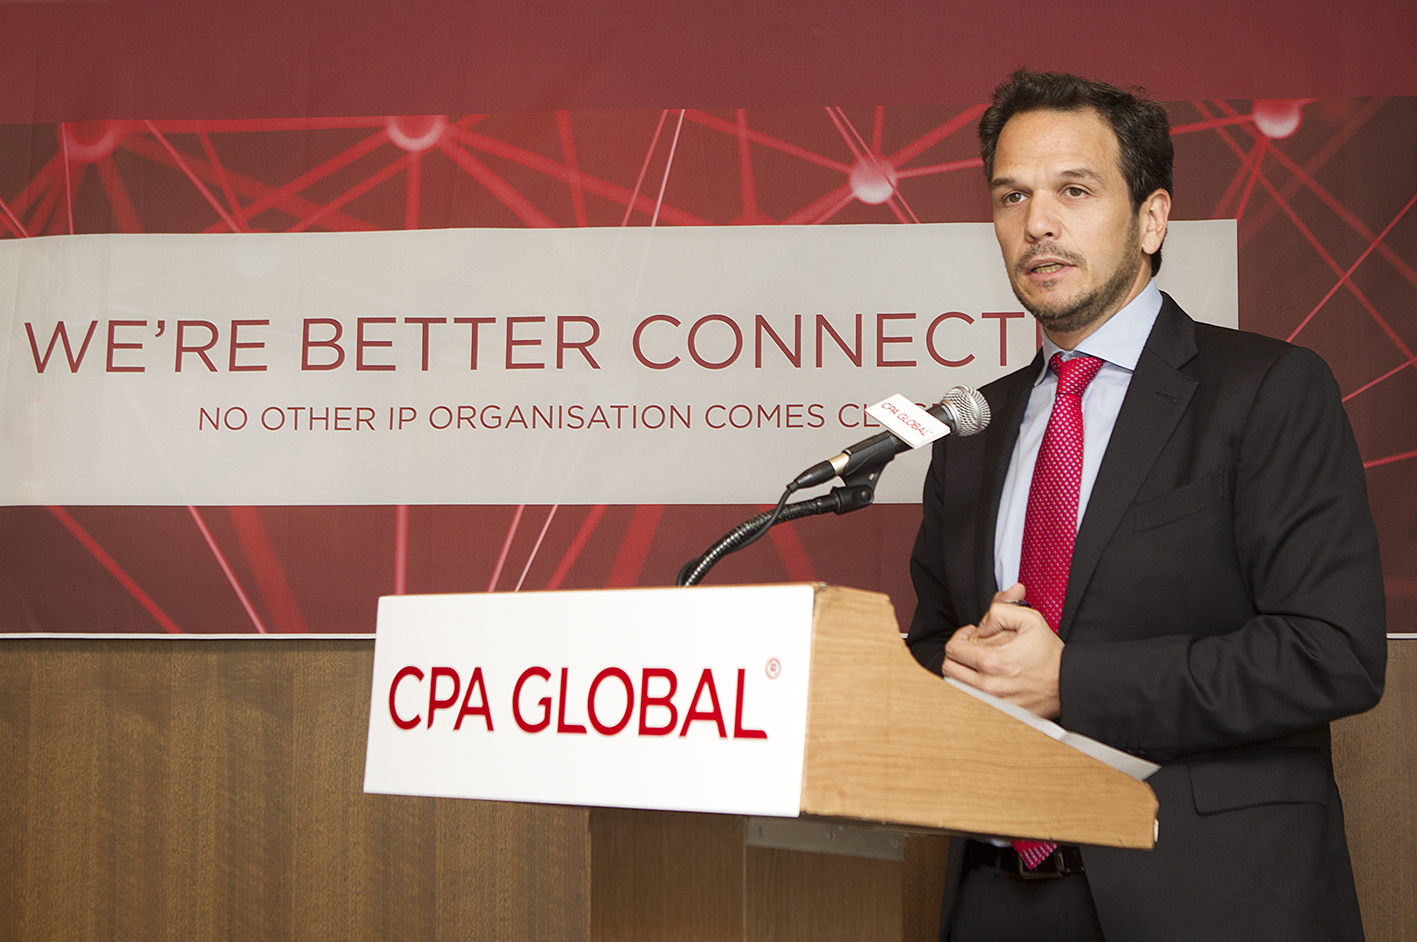 Marcos Antunes, General Manager of CPA GLOBAL Asia Pacific, discussed its new corporate identity (CI) and future business vision at Korea Press Center in Seoul on May 12.